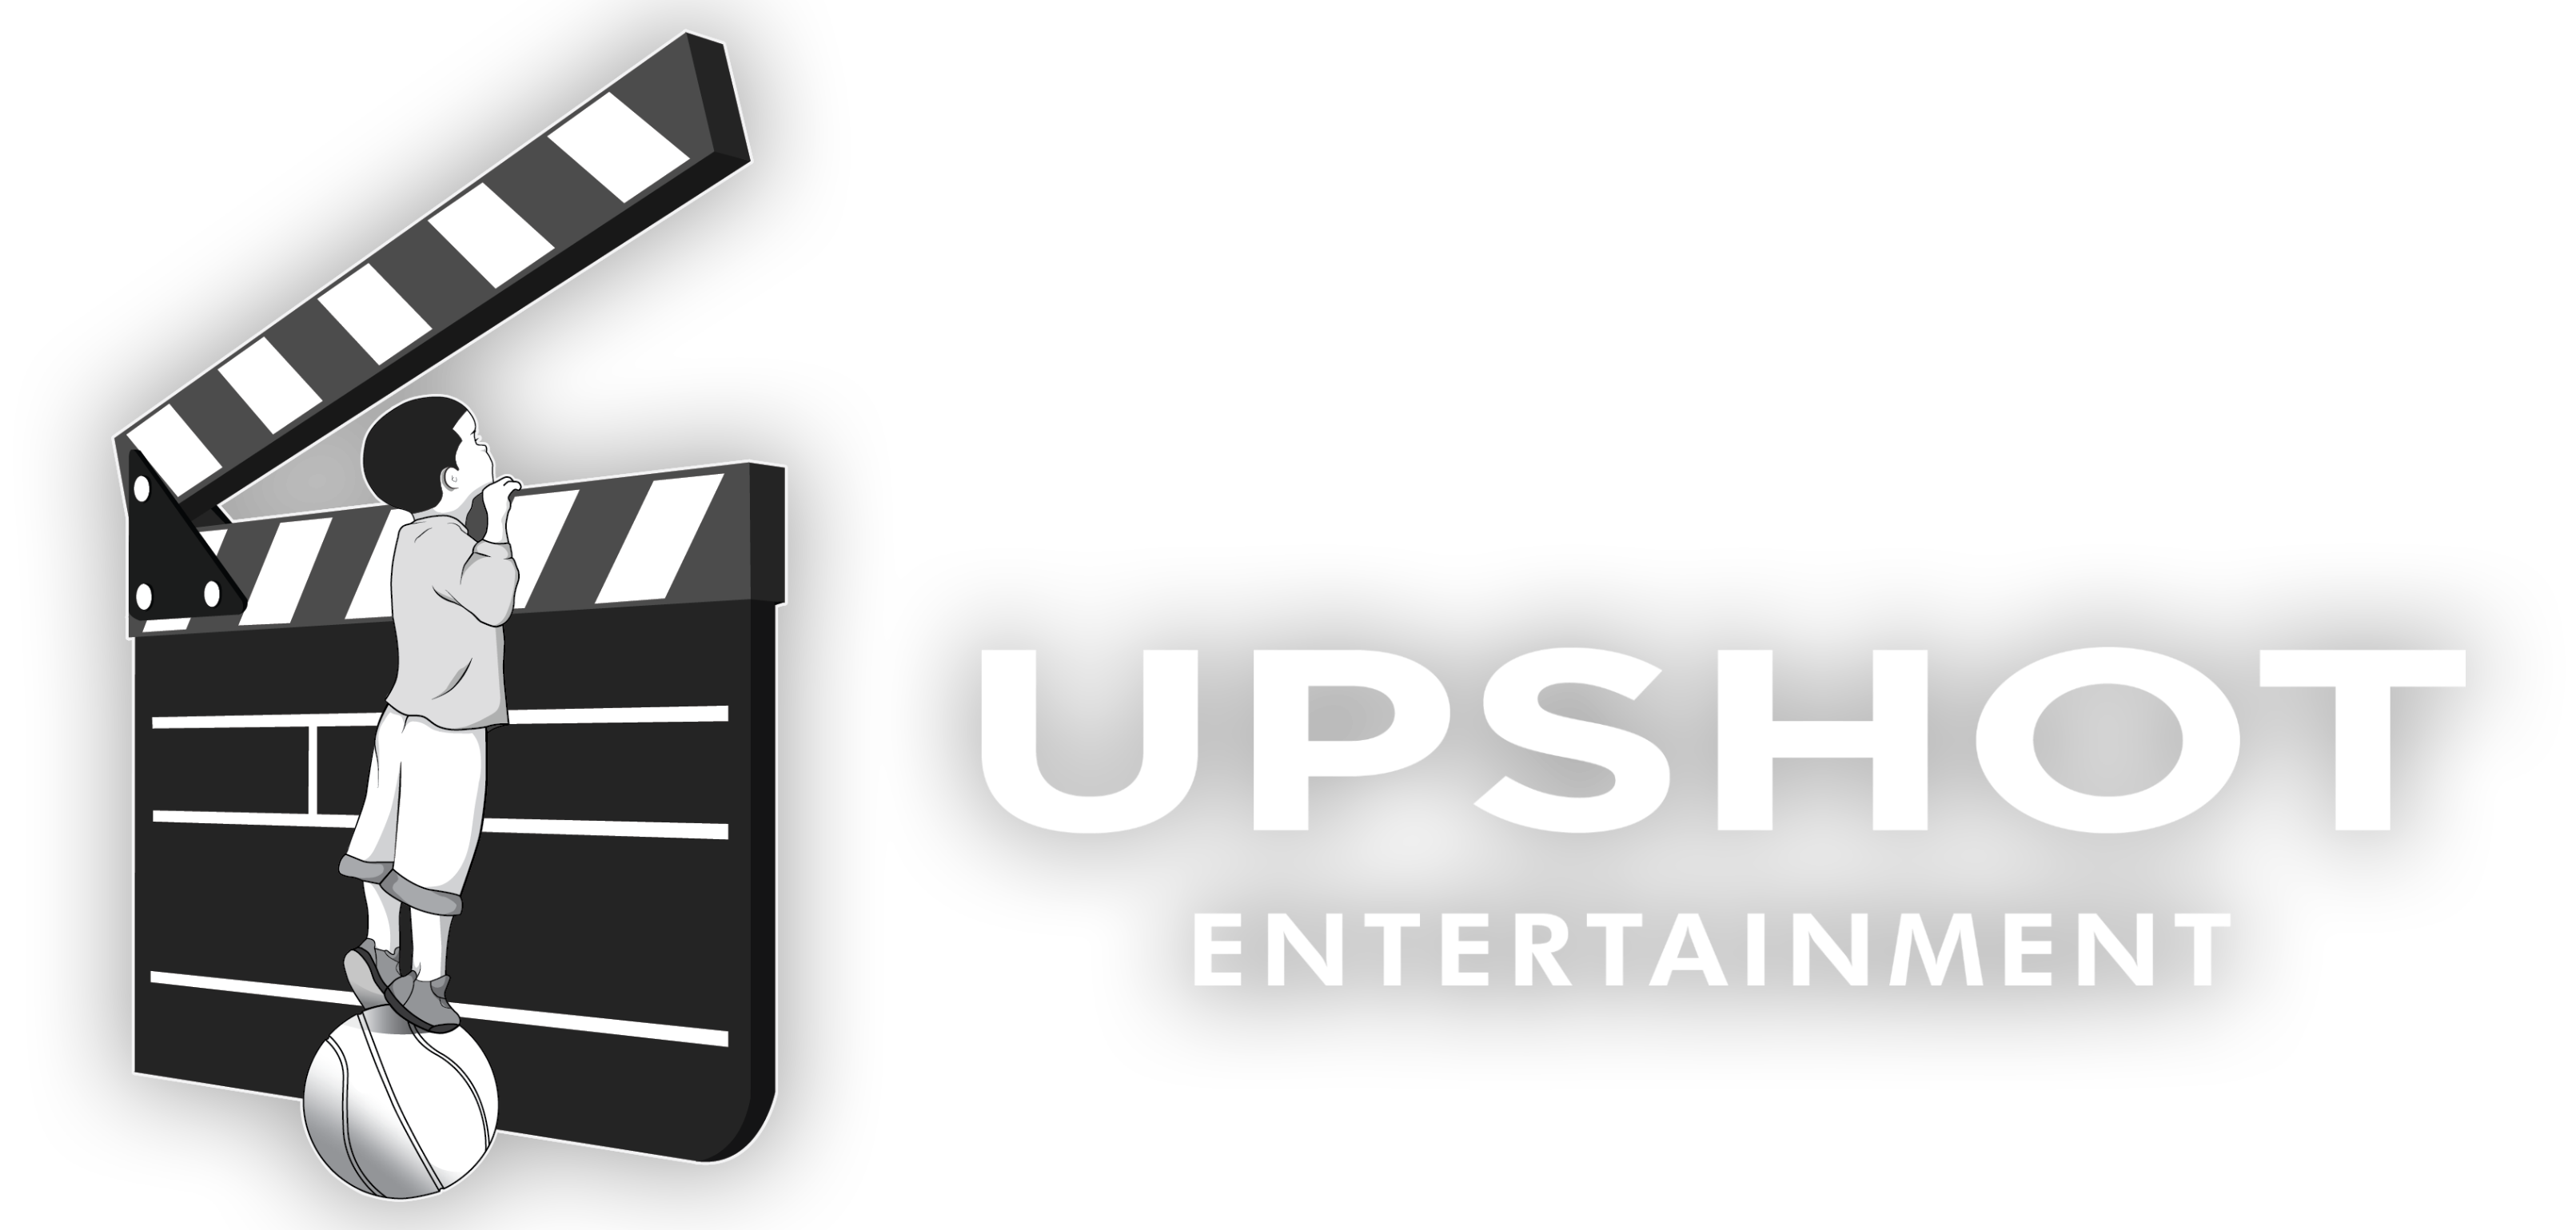 Upshot Entertainment - Create to Elevate®